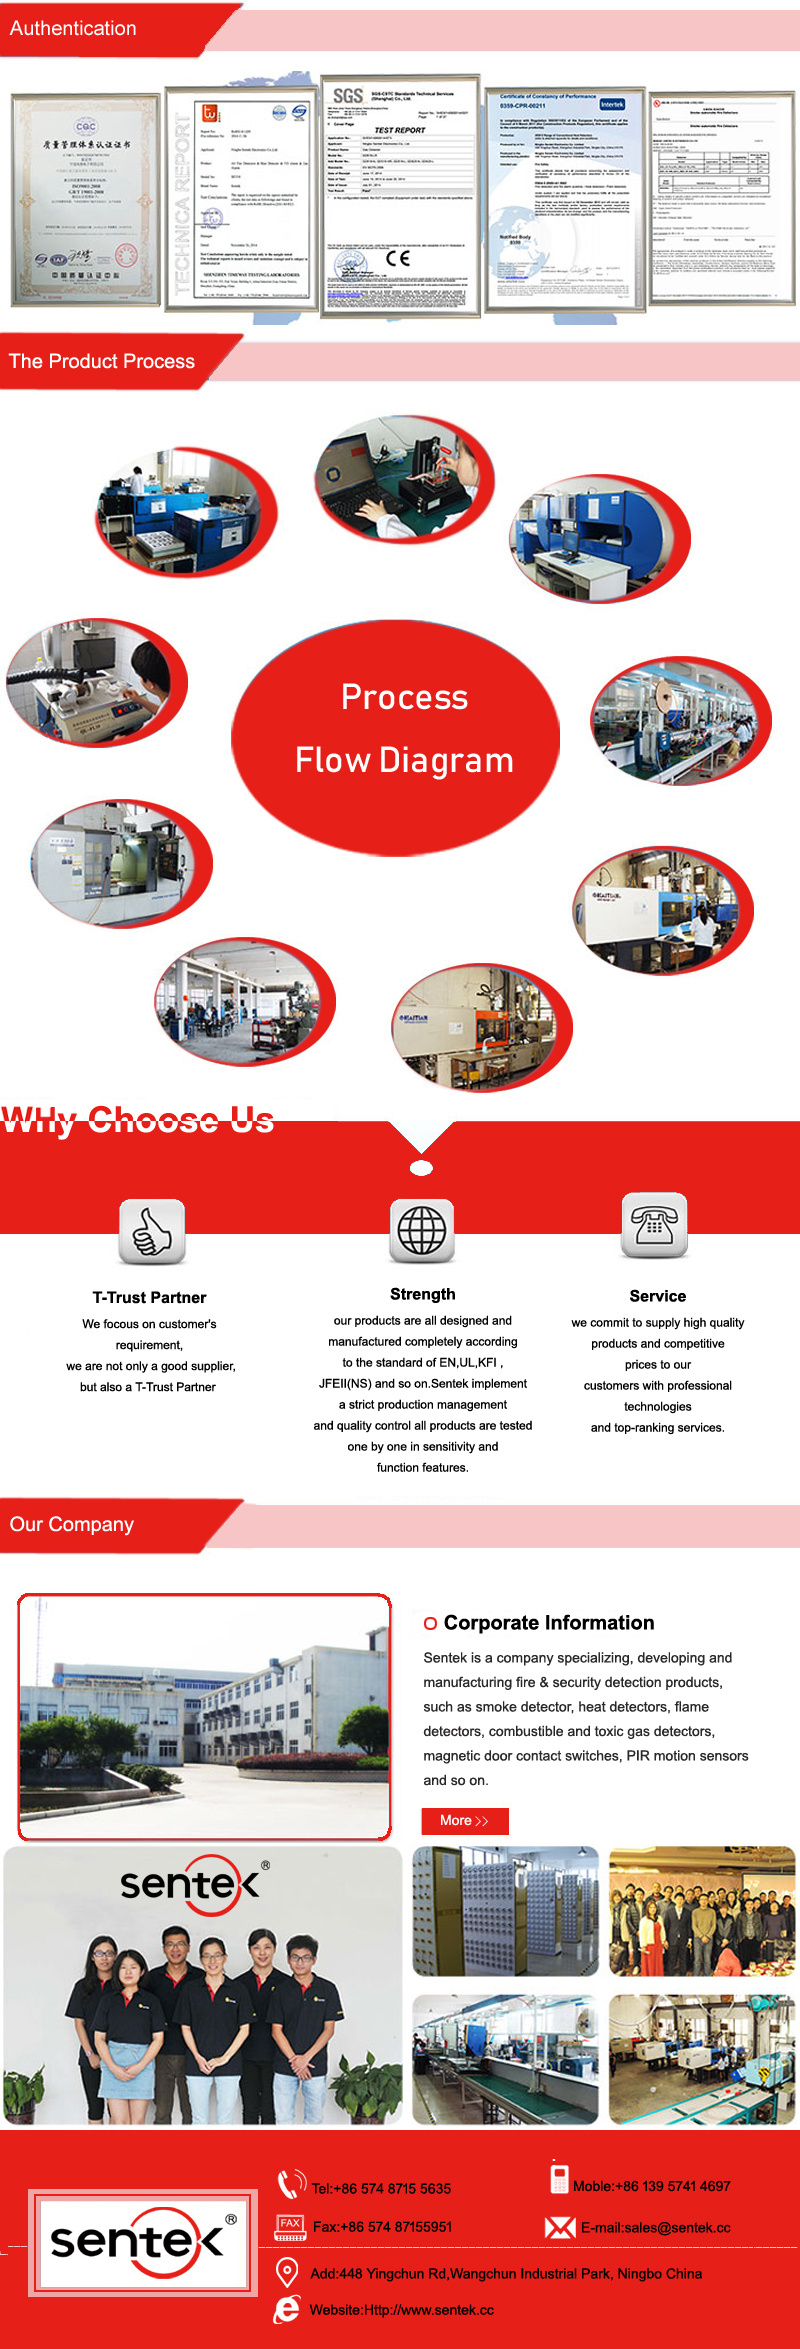 2 Or 4 Wired Fire Alarm Uv Flame Detector Fd 718 Buy Photocell Wiring Diagram Company Information